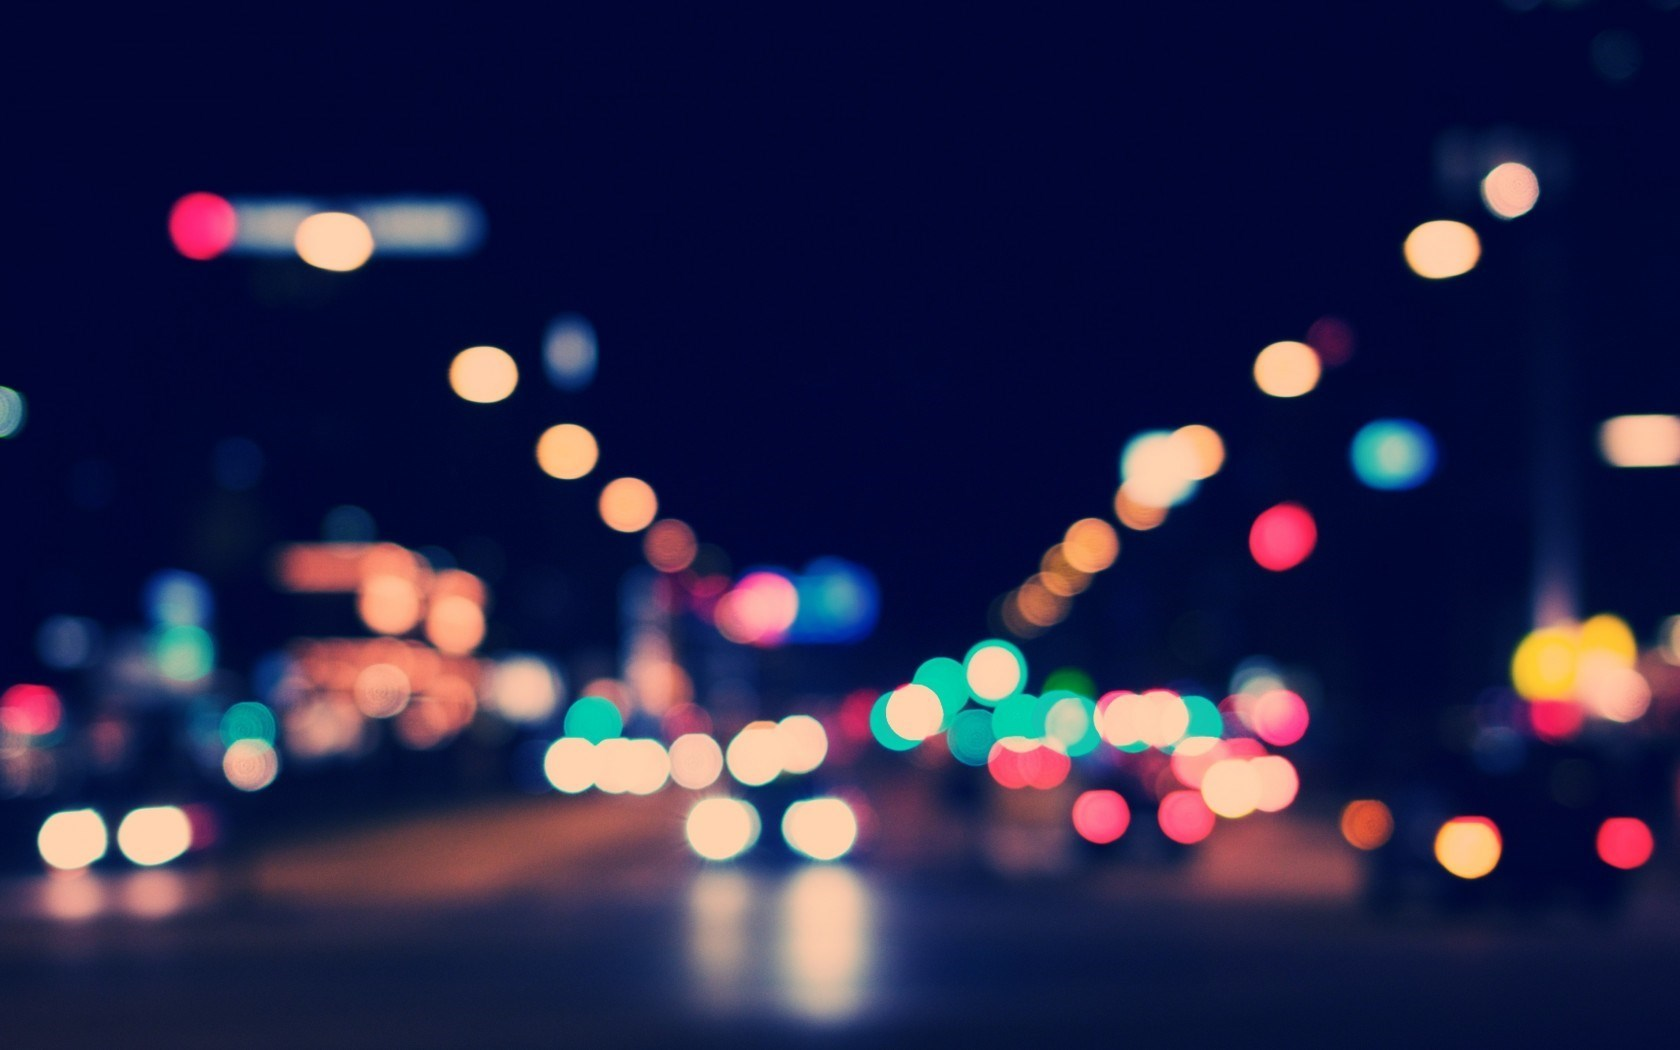 City Street Night Wallpaper